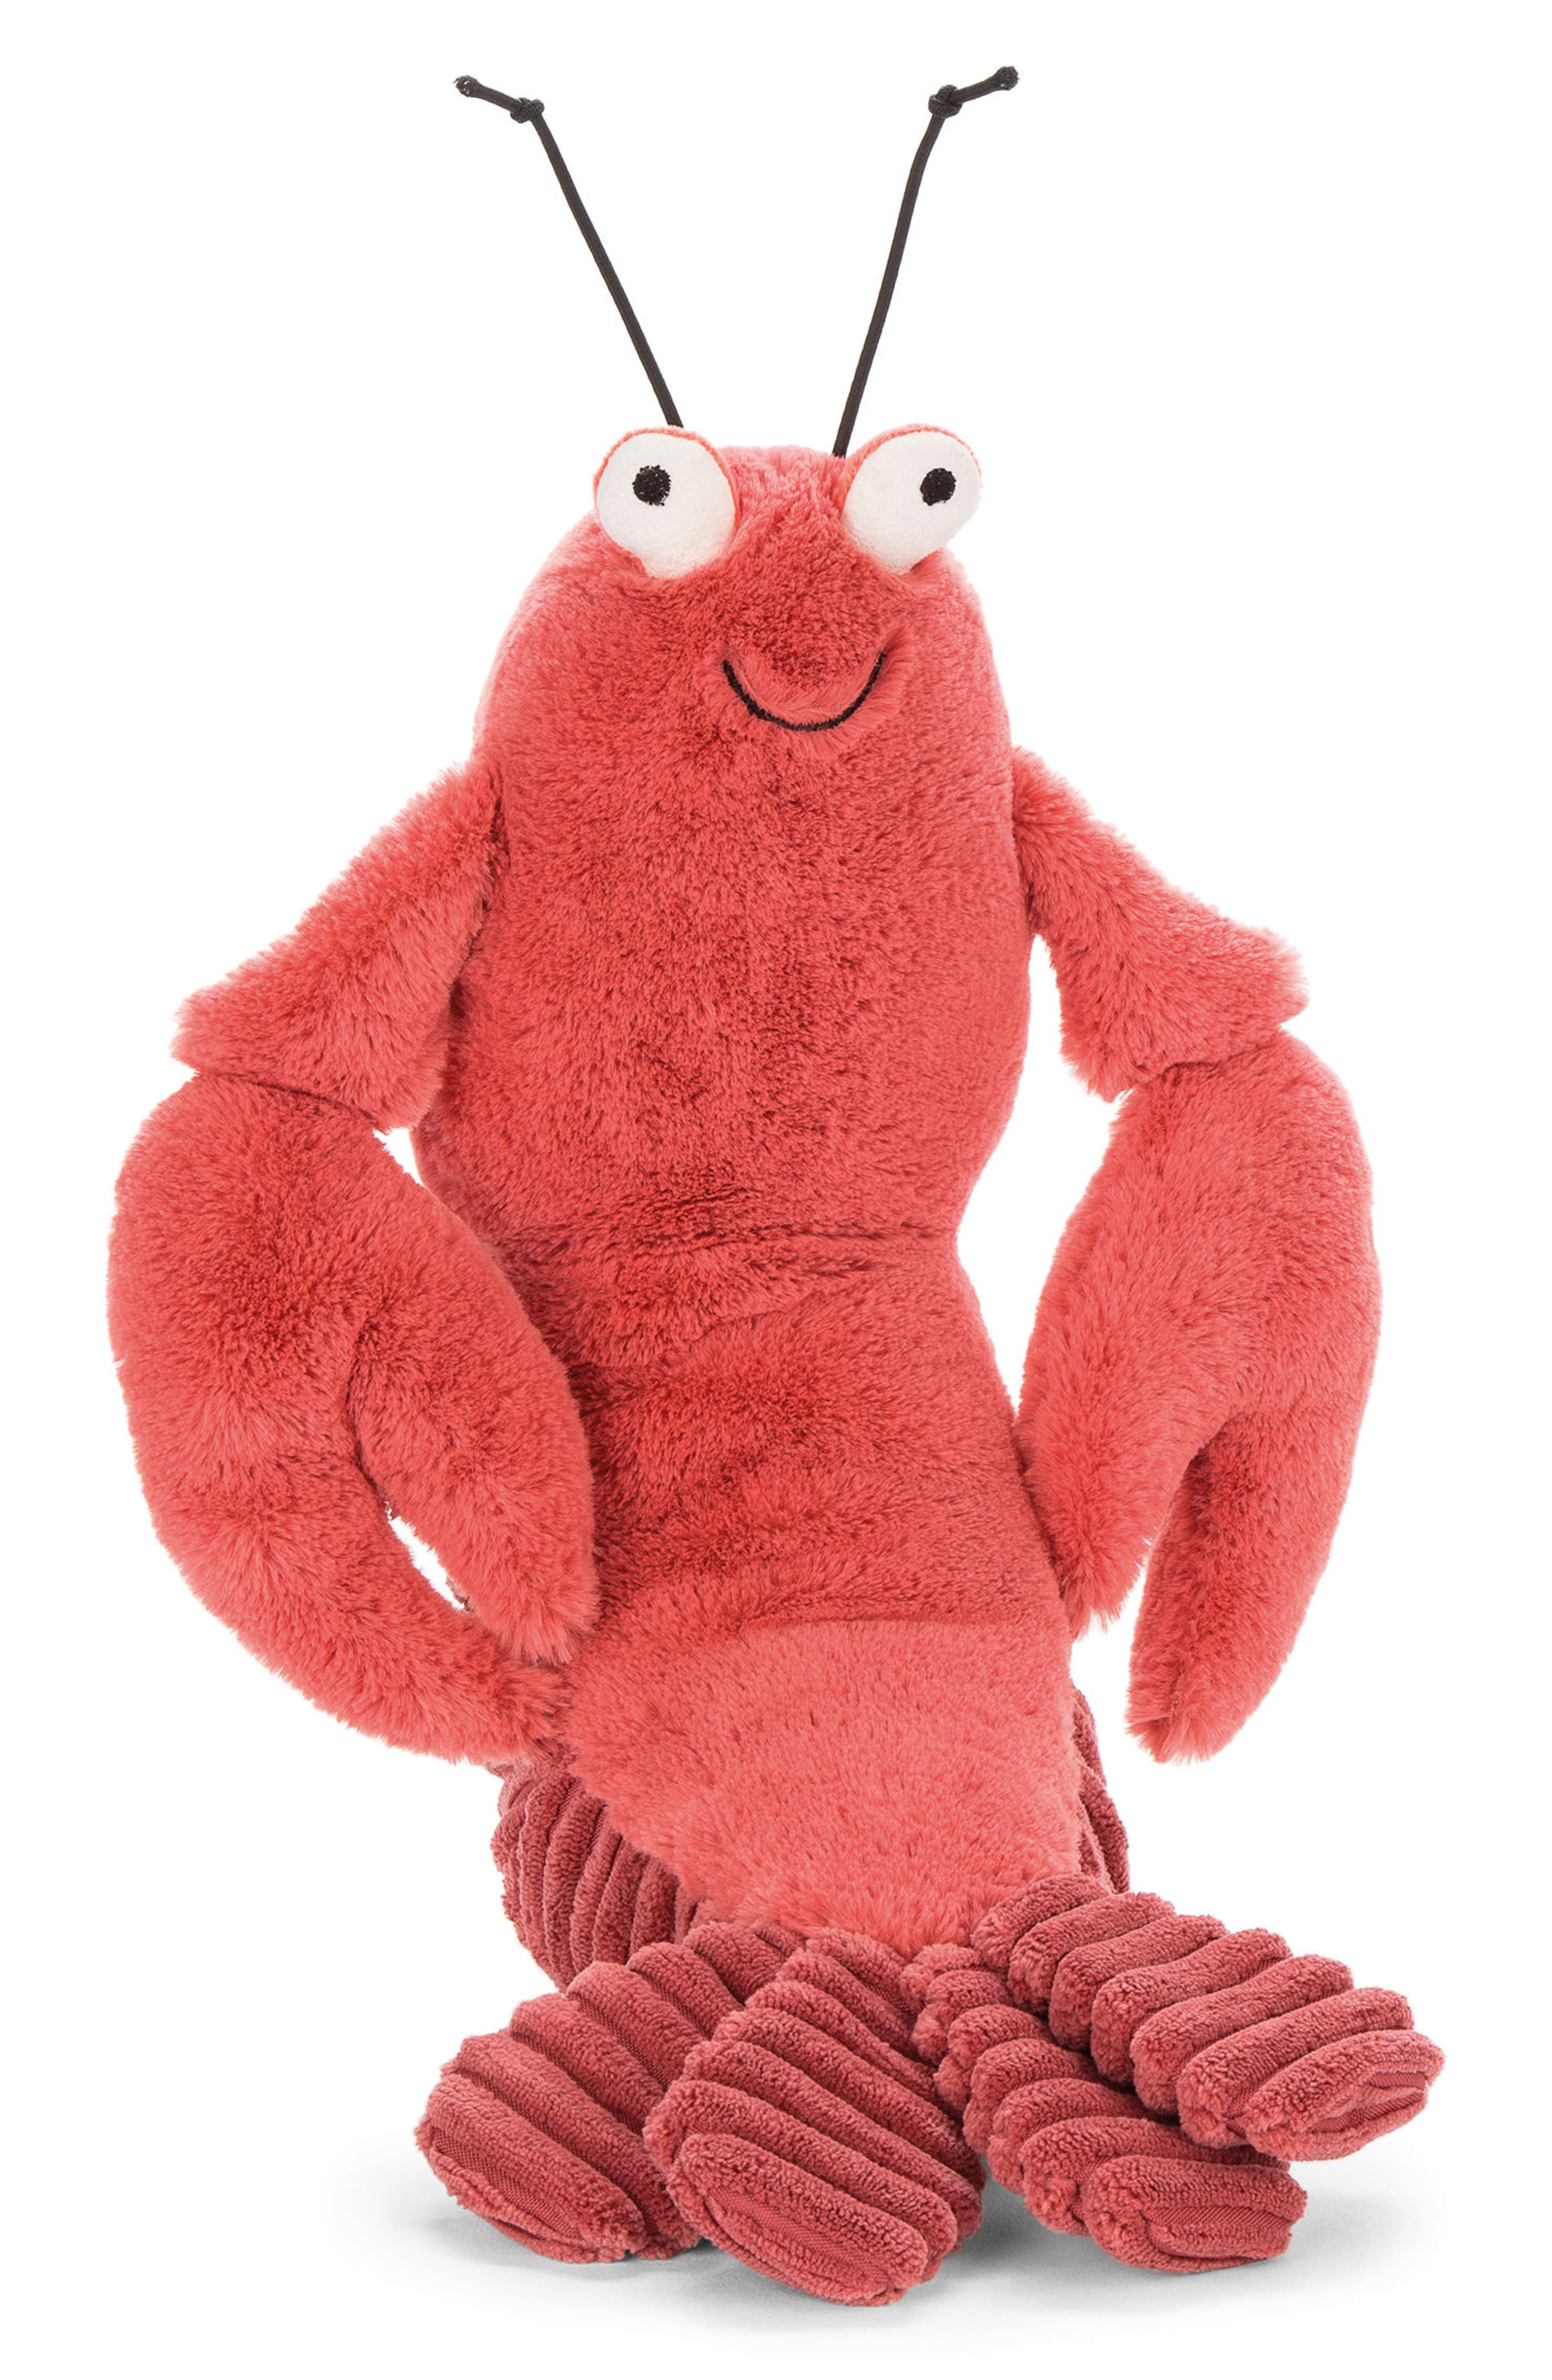 Larry Lobster Stuffed Animal,                             Main thumbnail 1, color,                             600